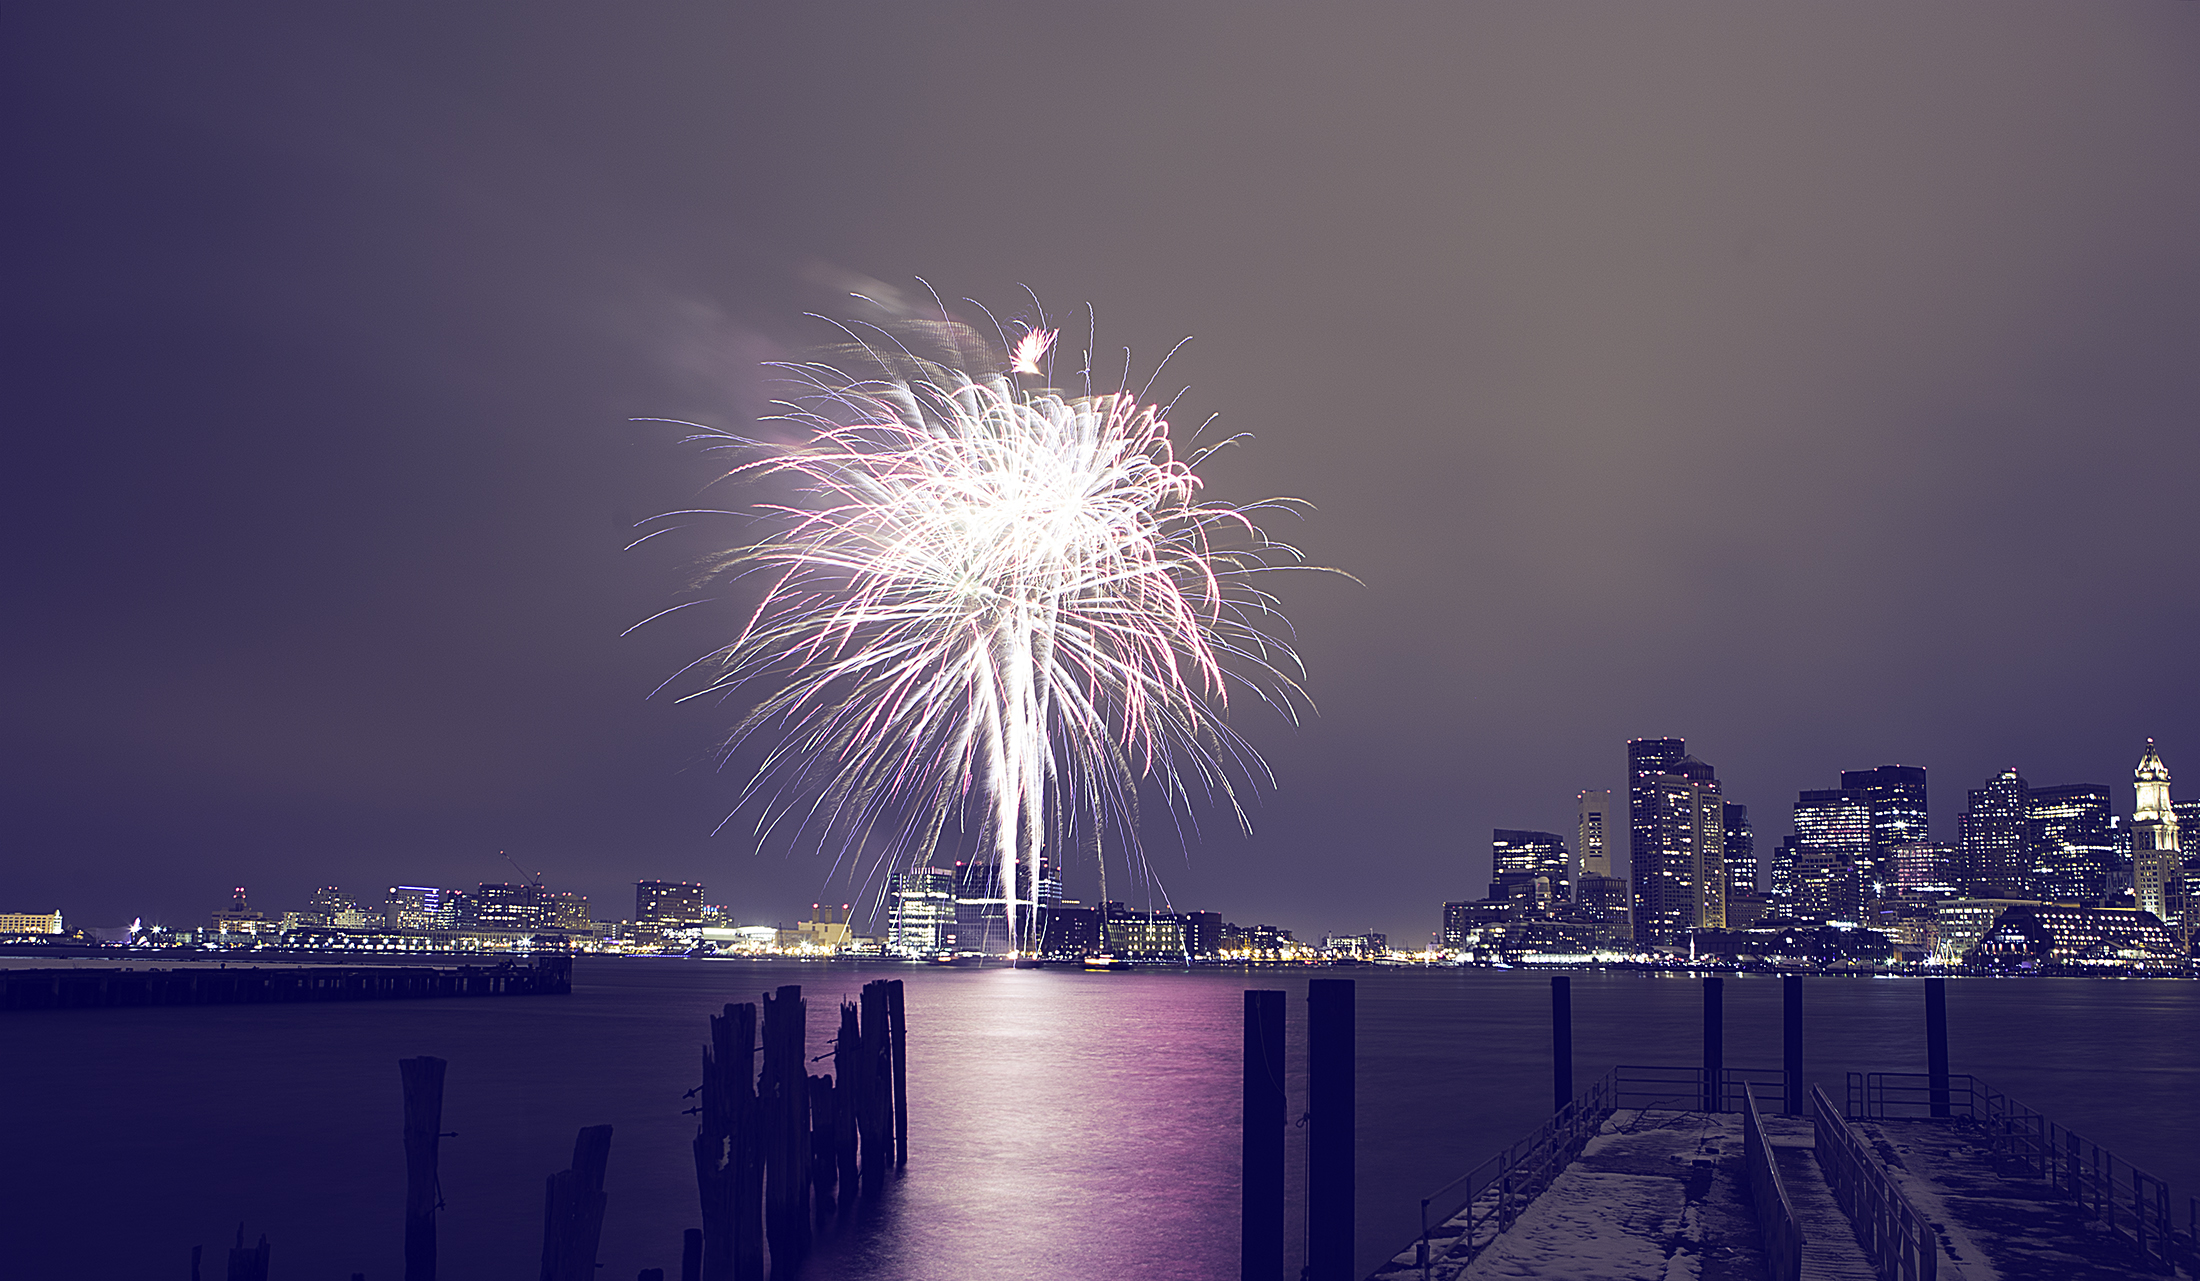 Boston Downtown from the Pier and Fireworks. Still astound.